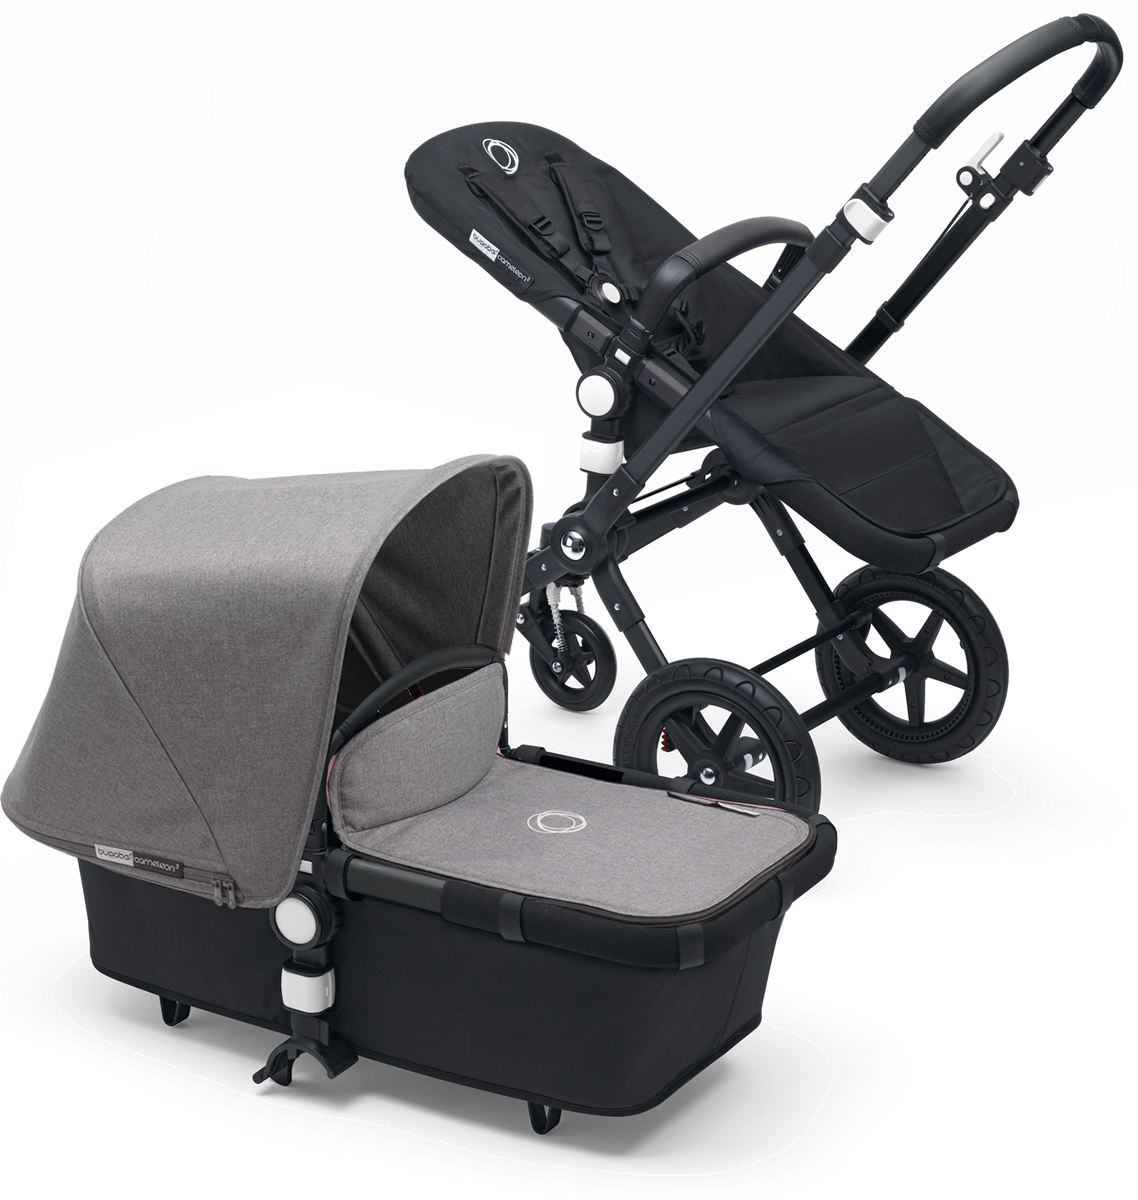 Bugaboo Cameleon 3 Stroller - All Black/Grey Melange